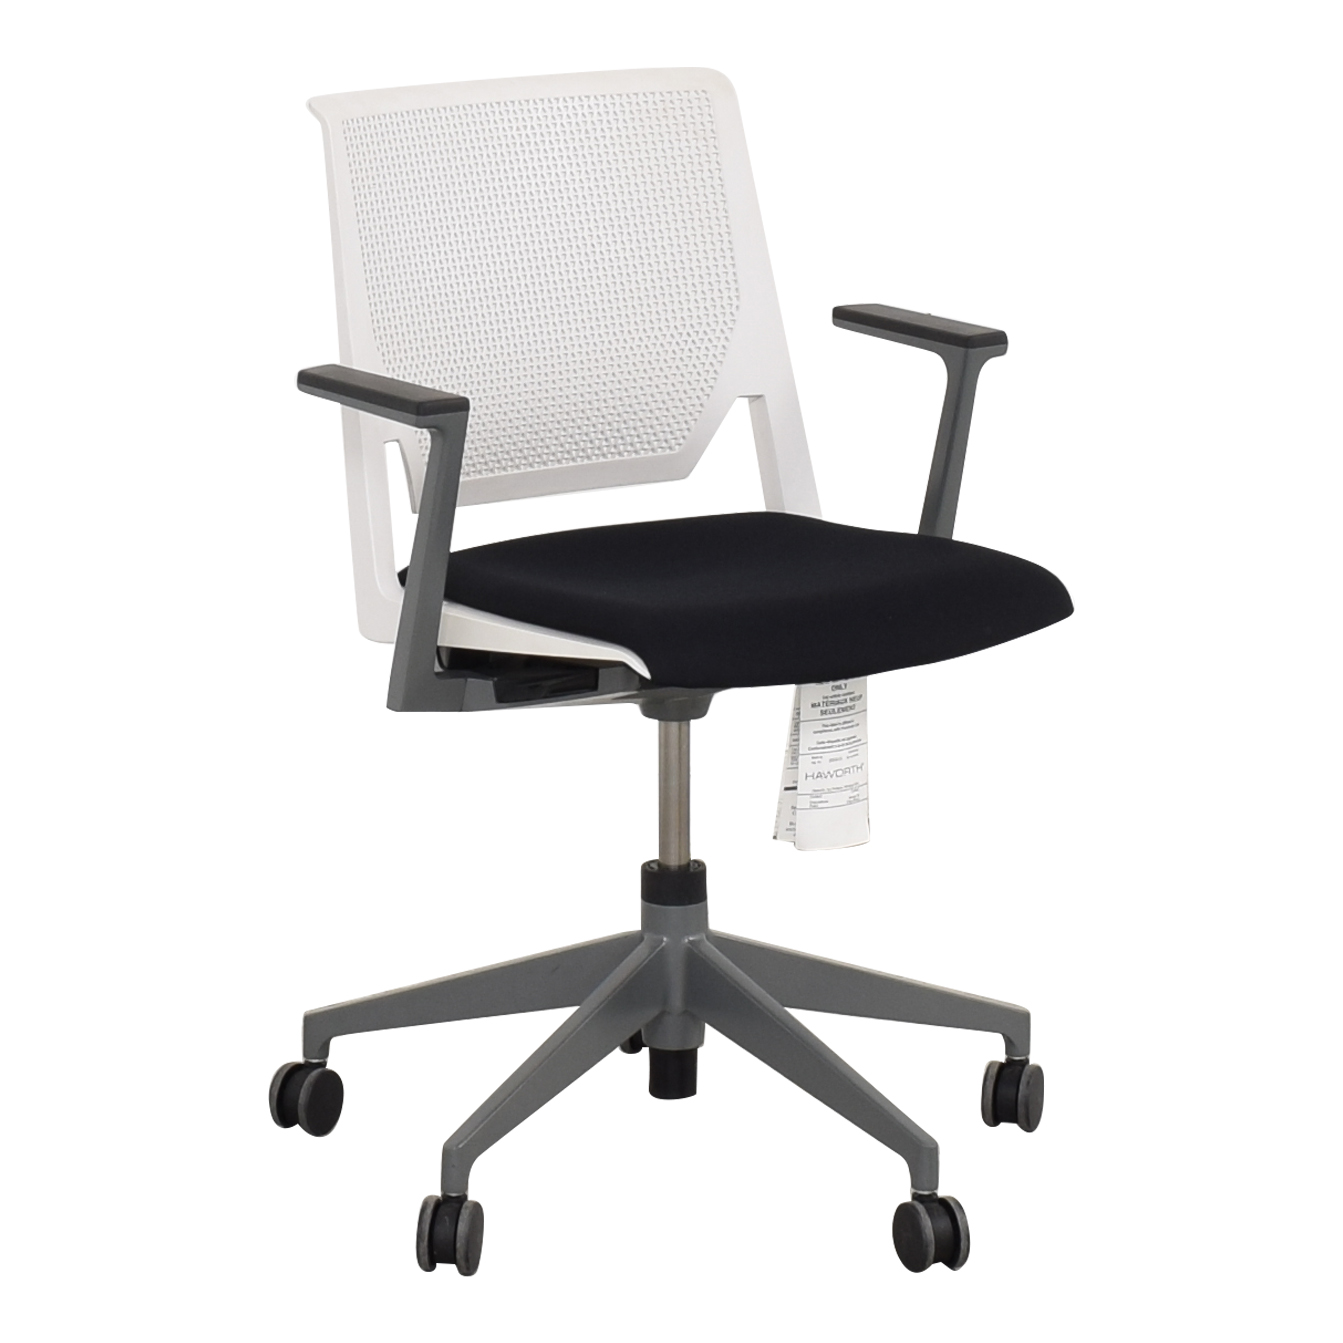 Haworth Haworth Very Conference Chair with Arms price